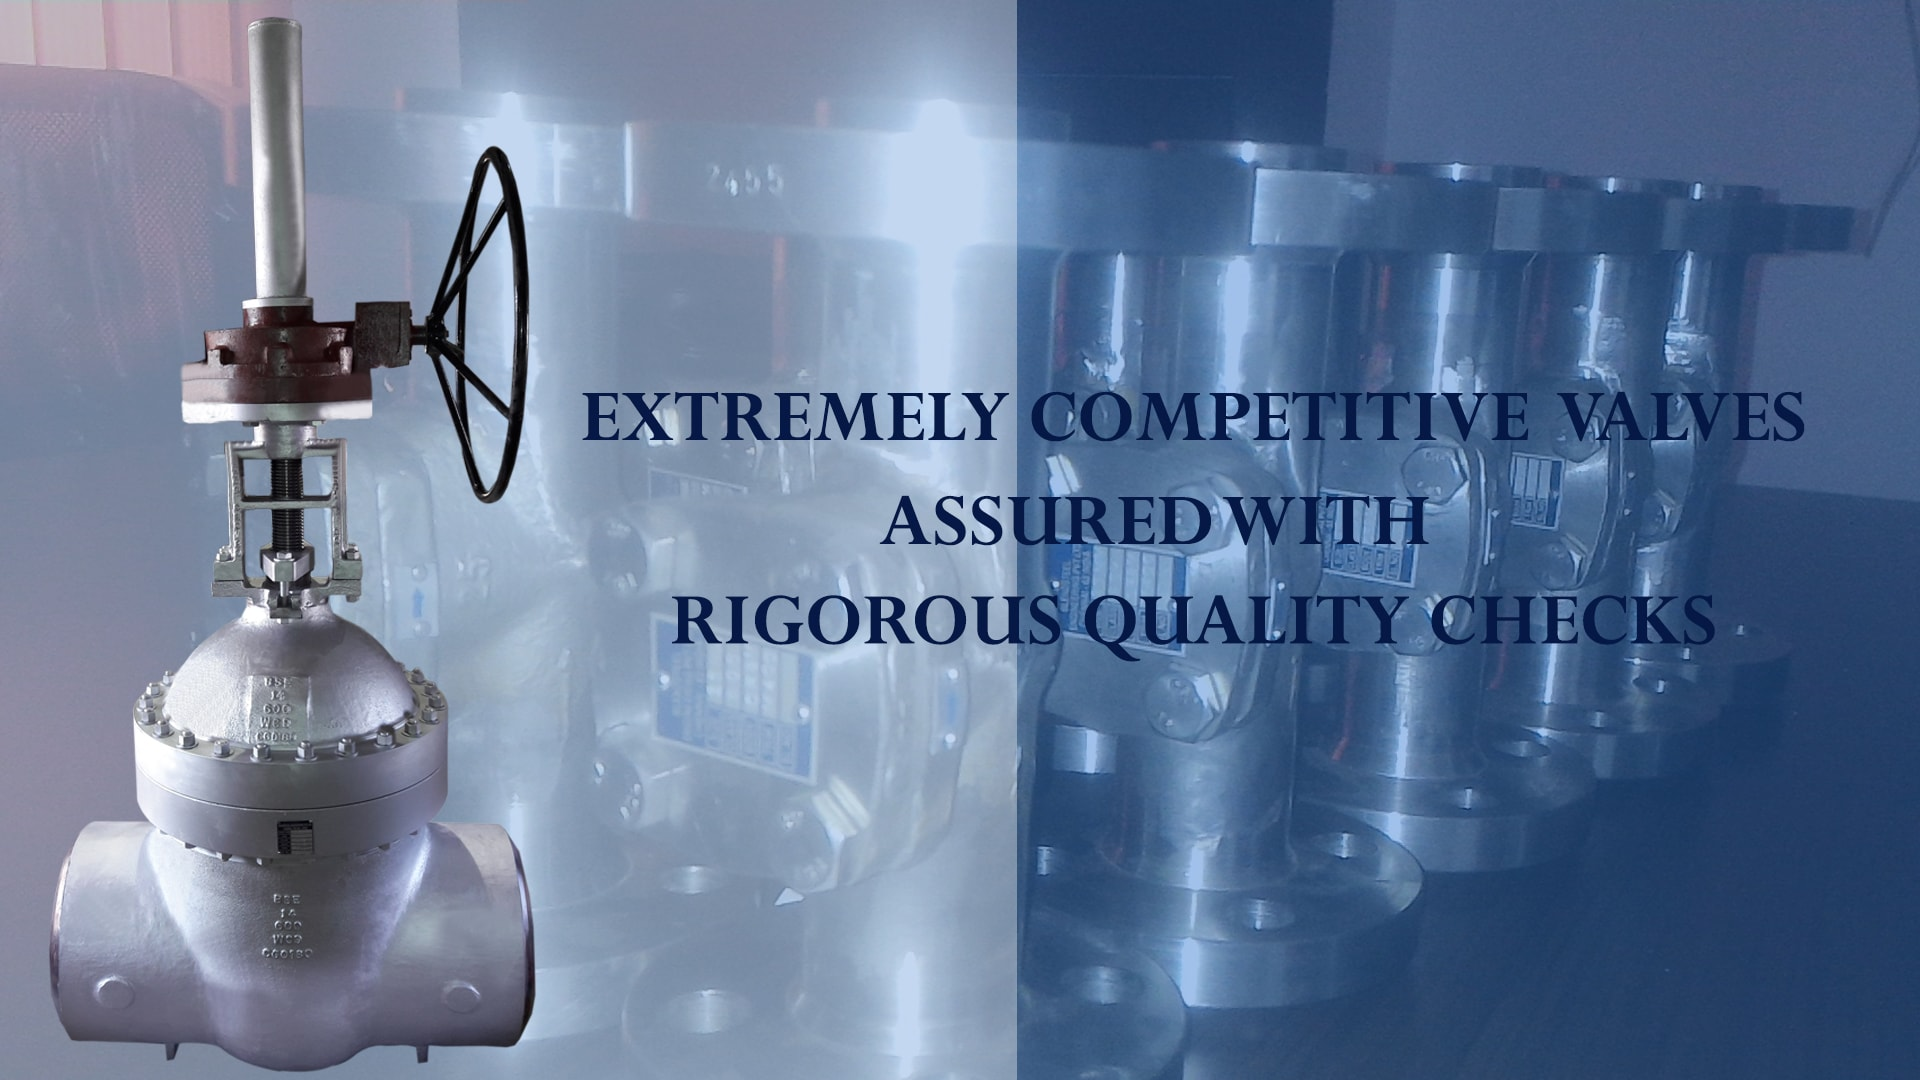 Extremely Competitive valves assured with Rigorous quality checks